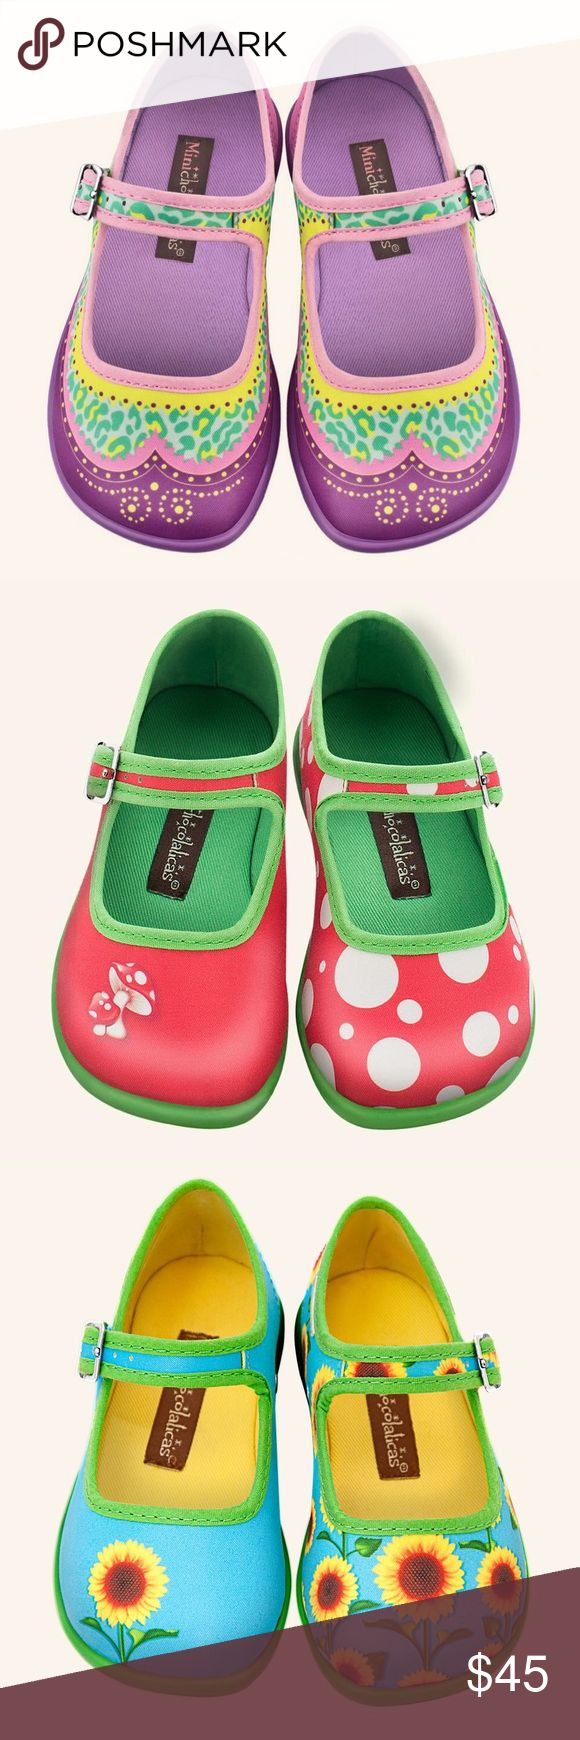 Mini Chocolaticas shoes for little girls! Unique shoes for little girls in different and creative designs! Hot Chocolate Shoes Dress Shoes